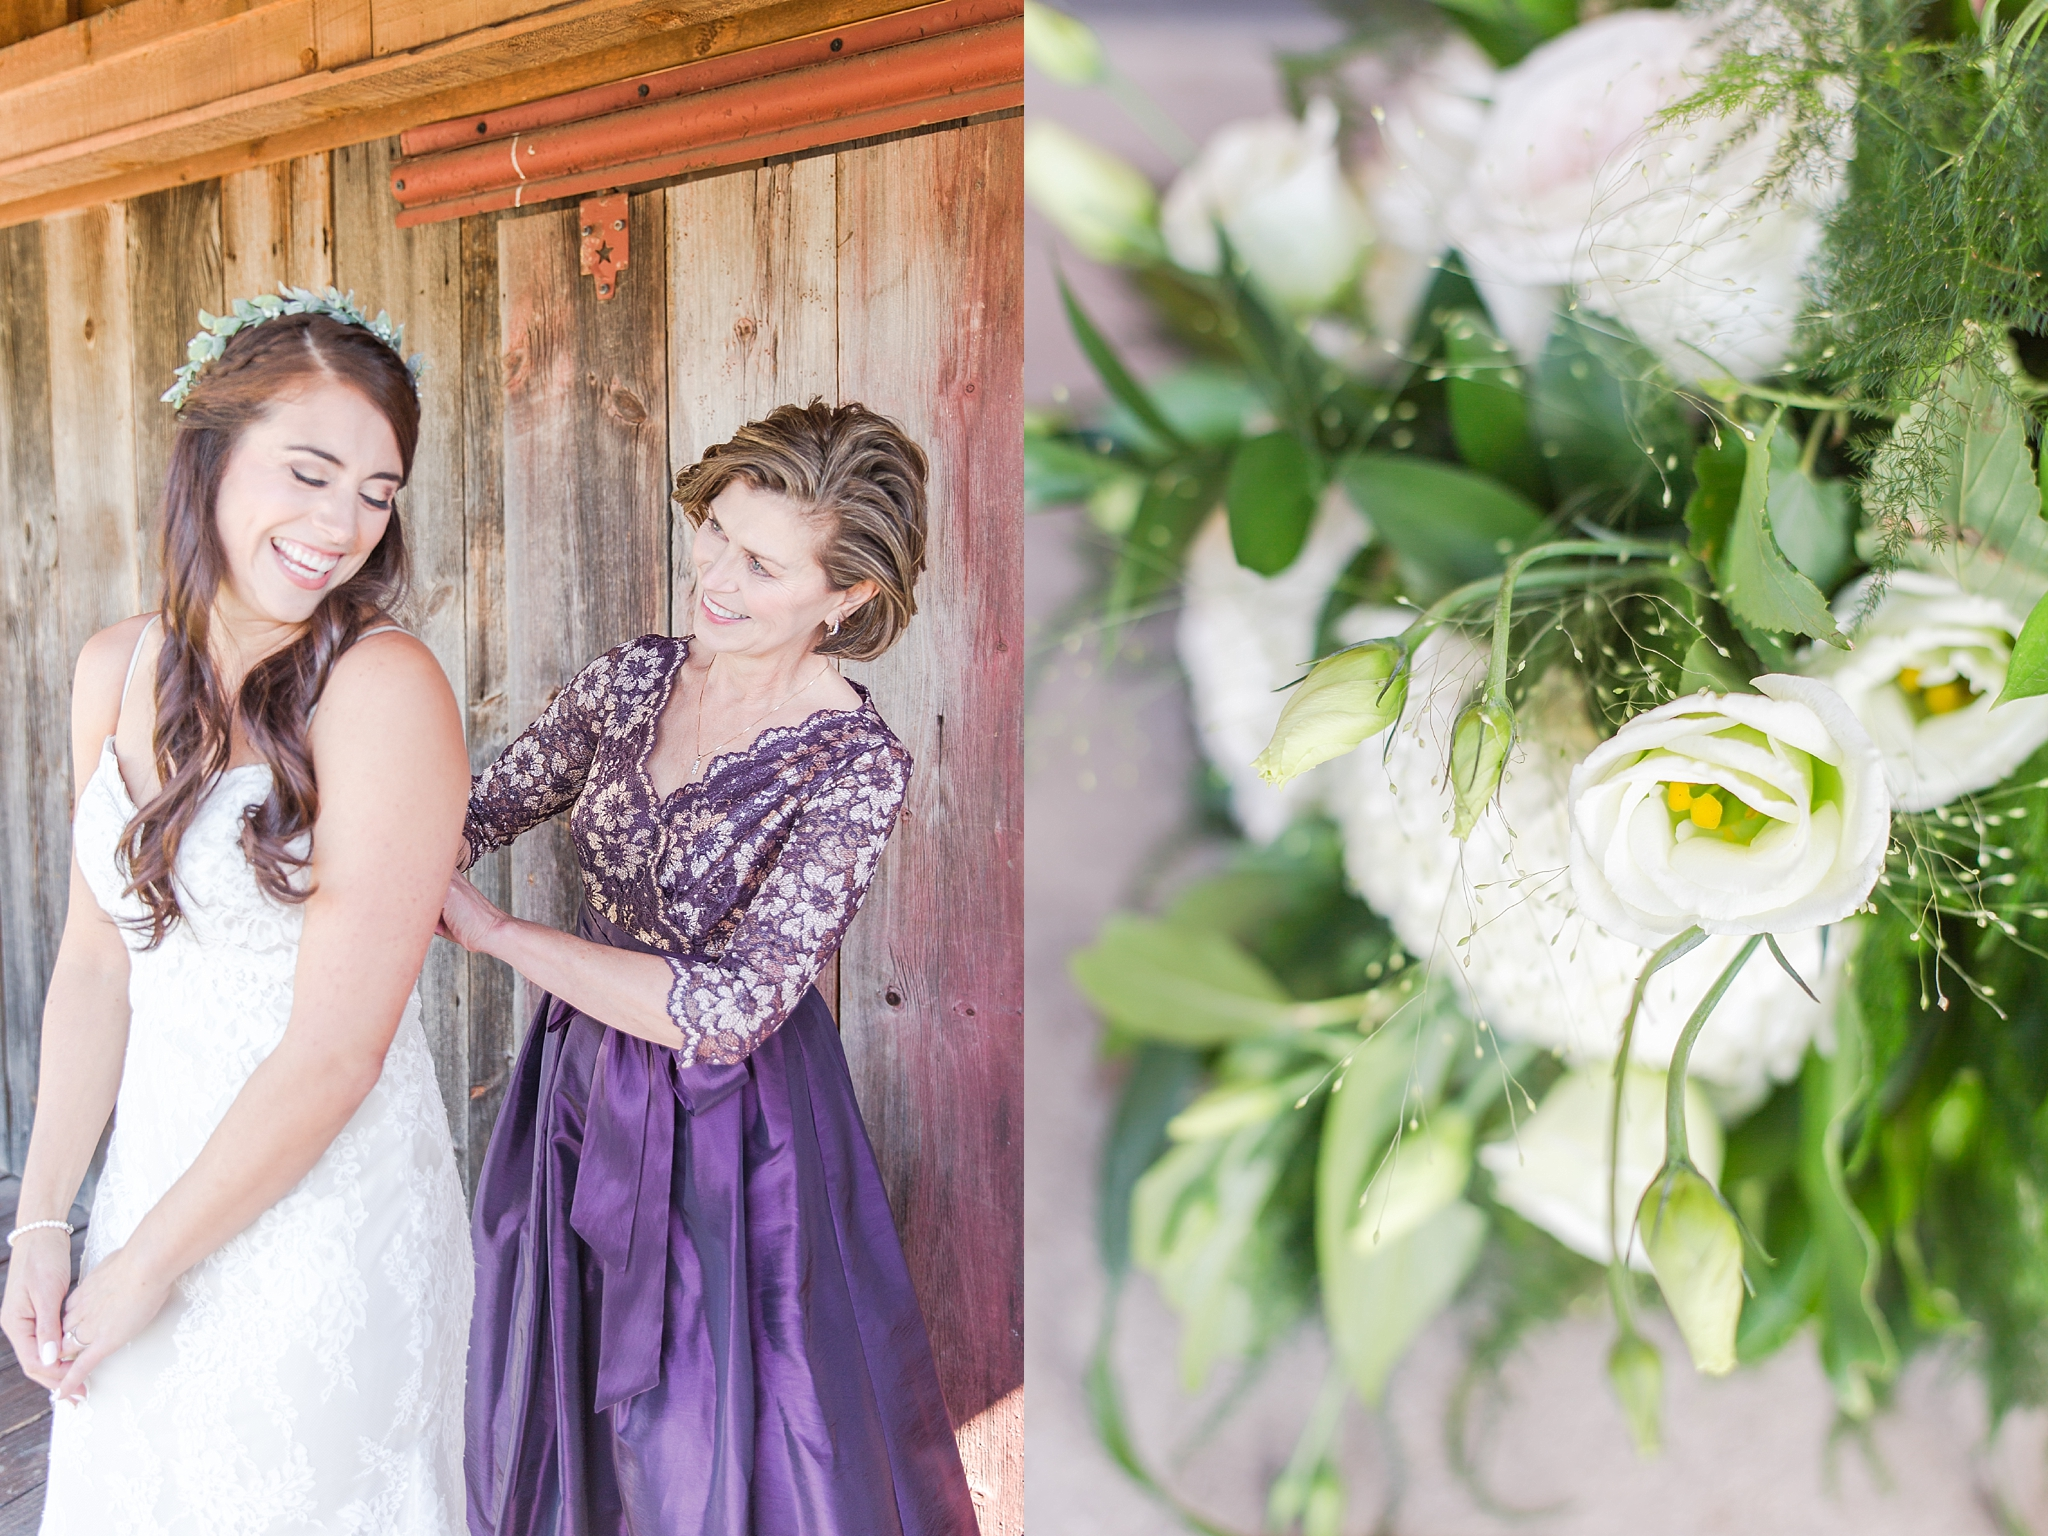 natural-rustic-wedding-photos-at-frutig-farms-the-valley-in-ann-arbor-michigan-by-courtney-carolyn-photography_0011.jpg